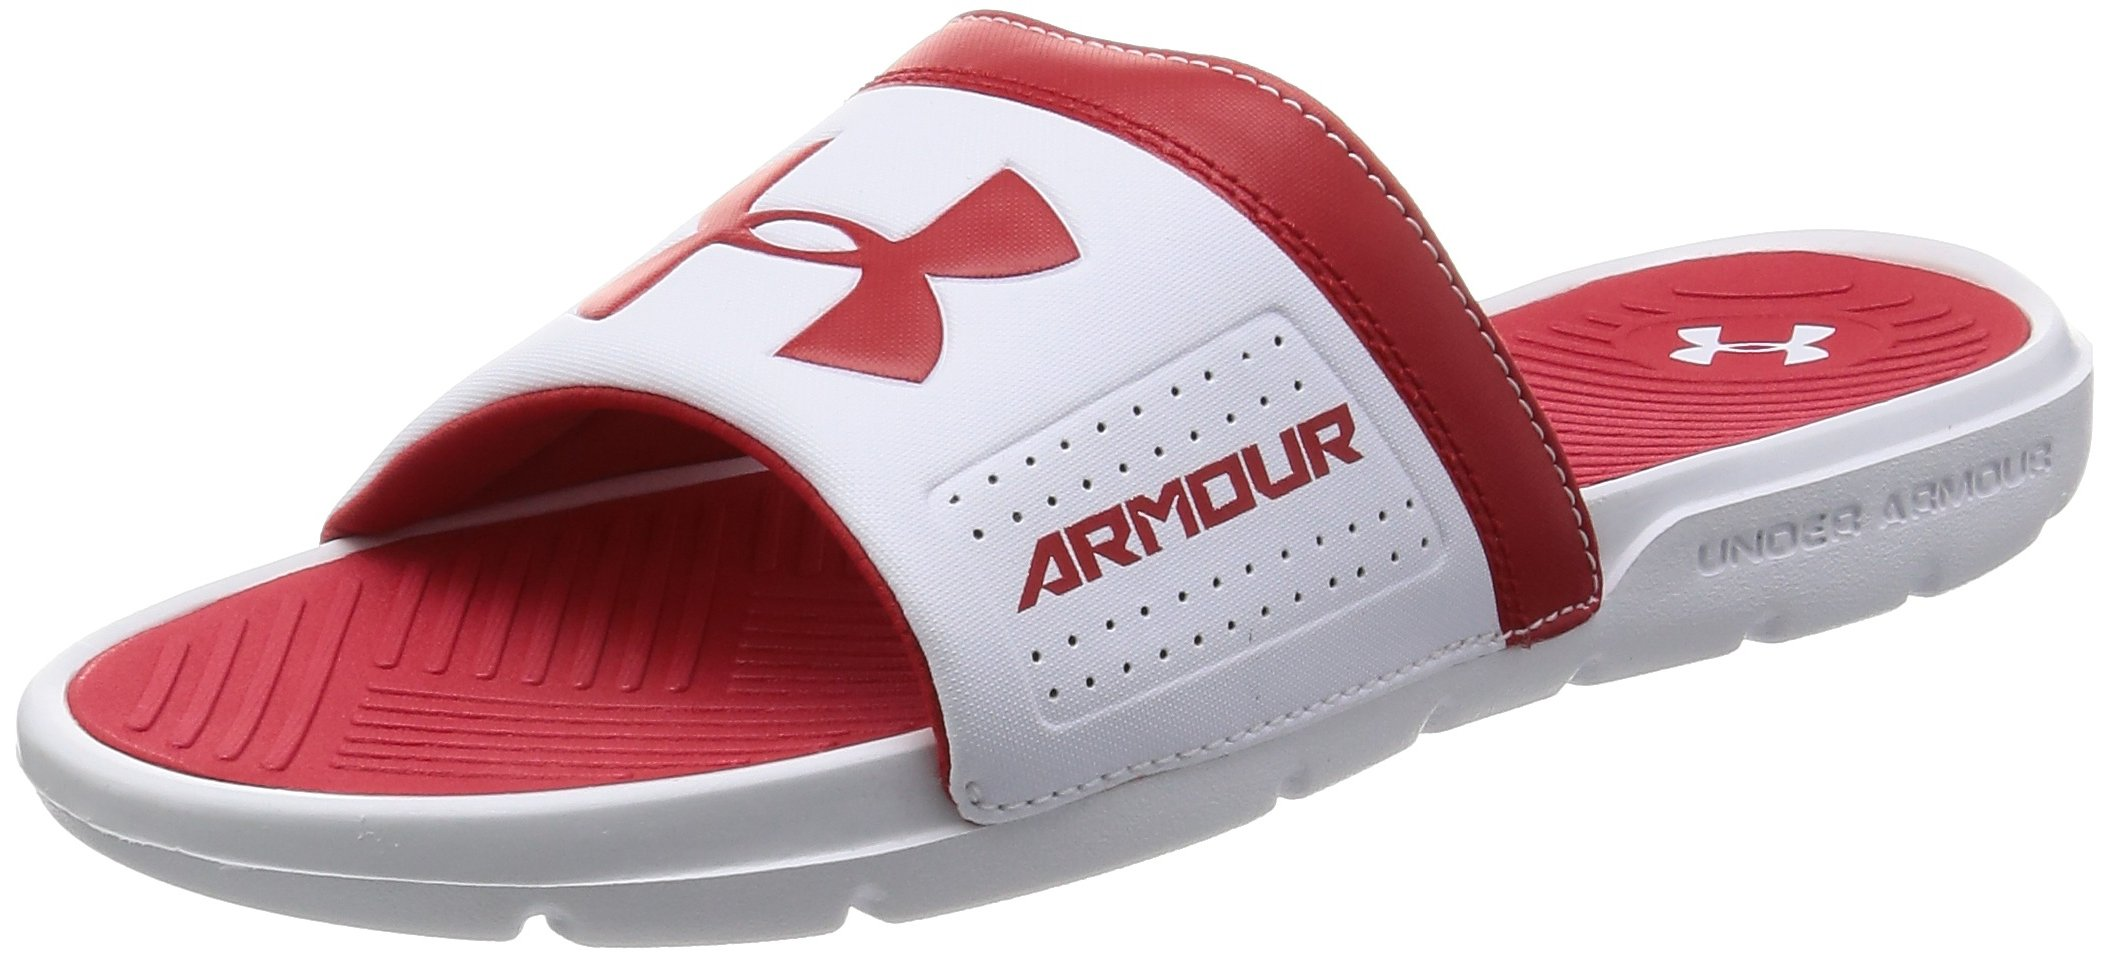 9c4538809bd9 Galleon - Under Armour Men s Playmaker VI Slide Sandal White (106) Red 12